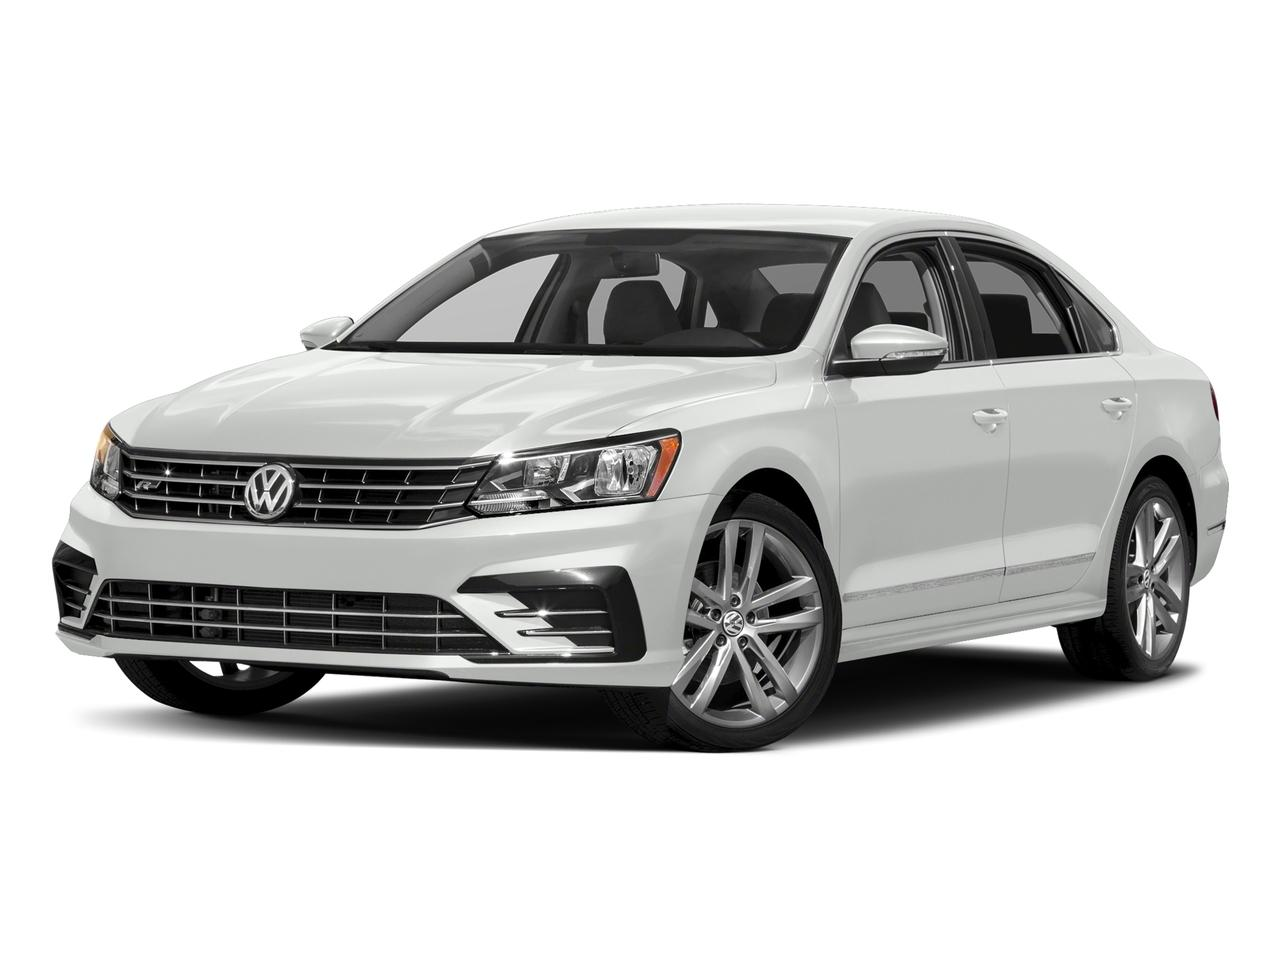 2017 Volkswagen Passat Vehicle Photo in Temple, TX 76502